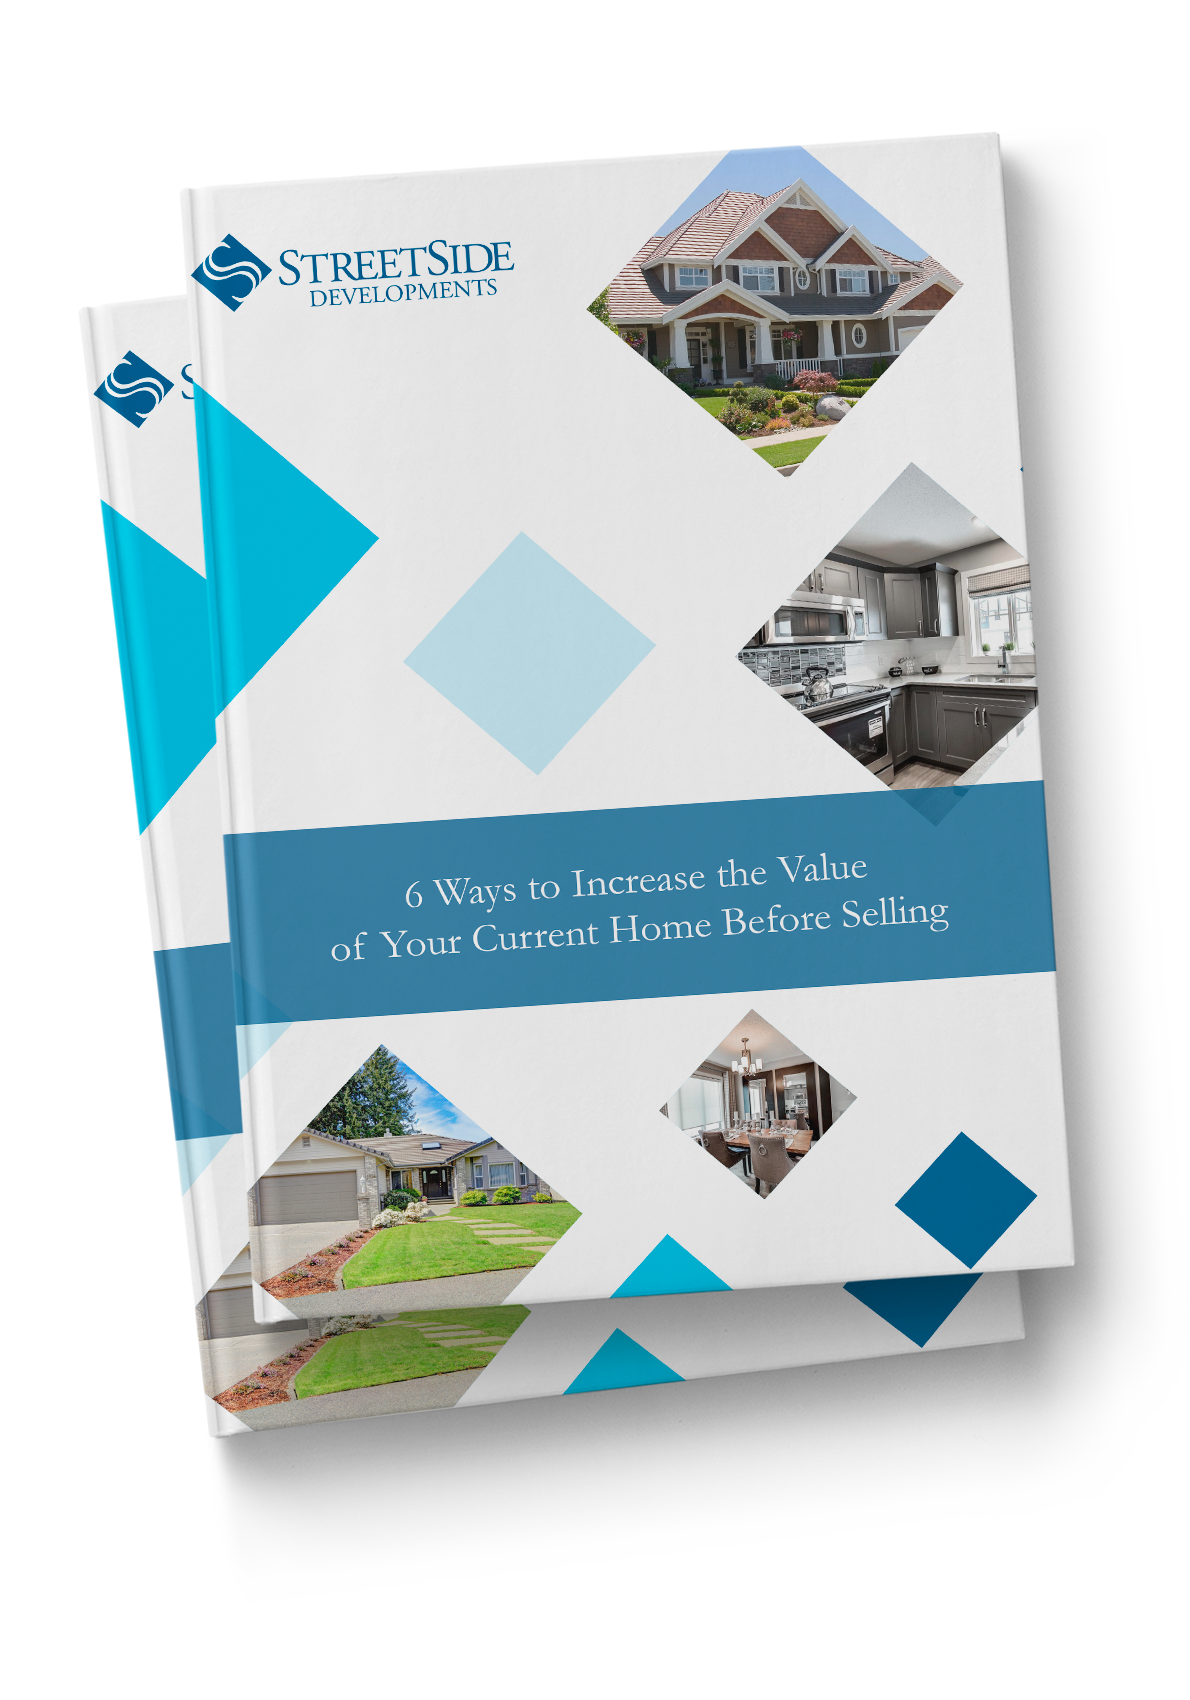 6 ways increase value current home before selling cover image